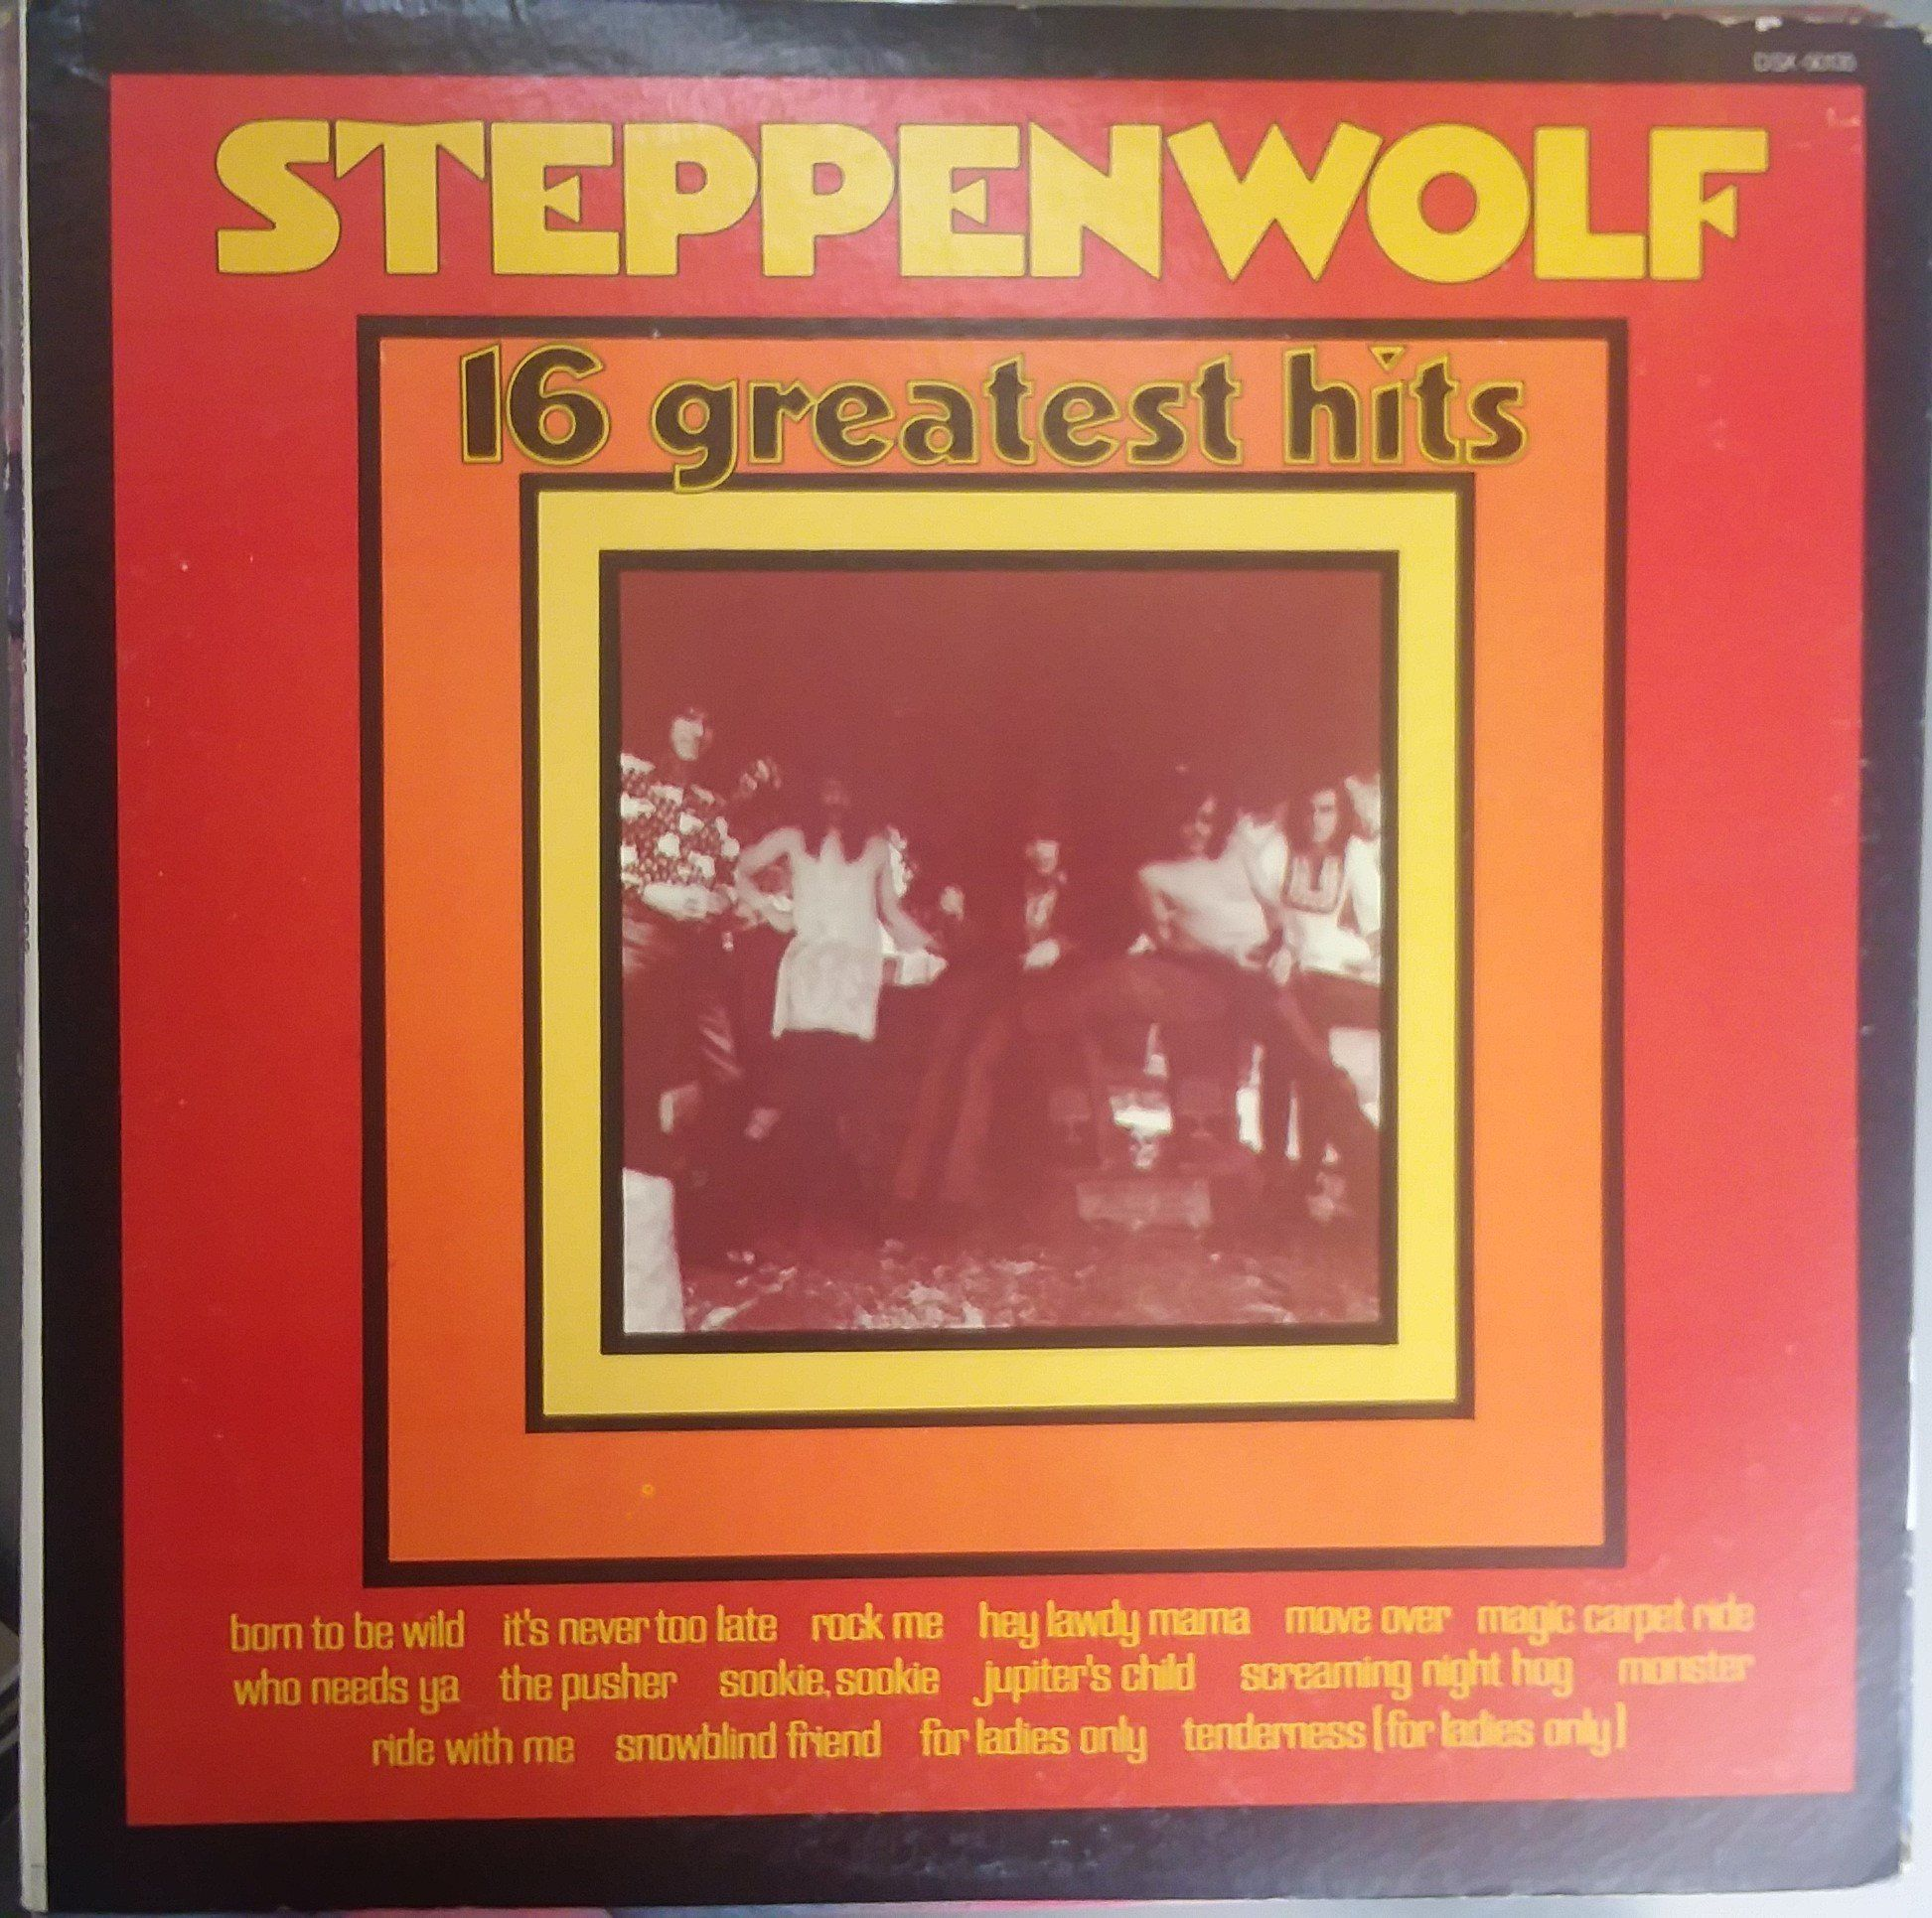 Steppenwolf 16 Greatest Hits Vintage Record Album Vinyl Lp Classic Rock And Roll Music Canadian Americ Classic Rock And Roll Greatest Hits Vintage Records